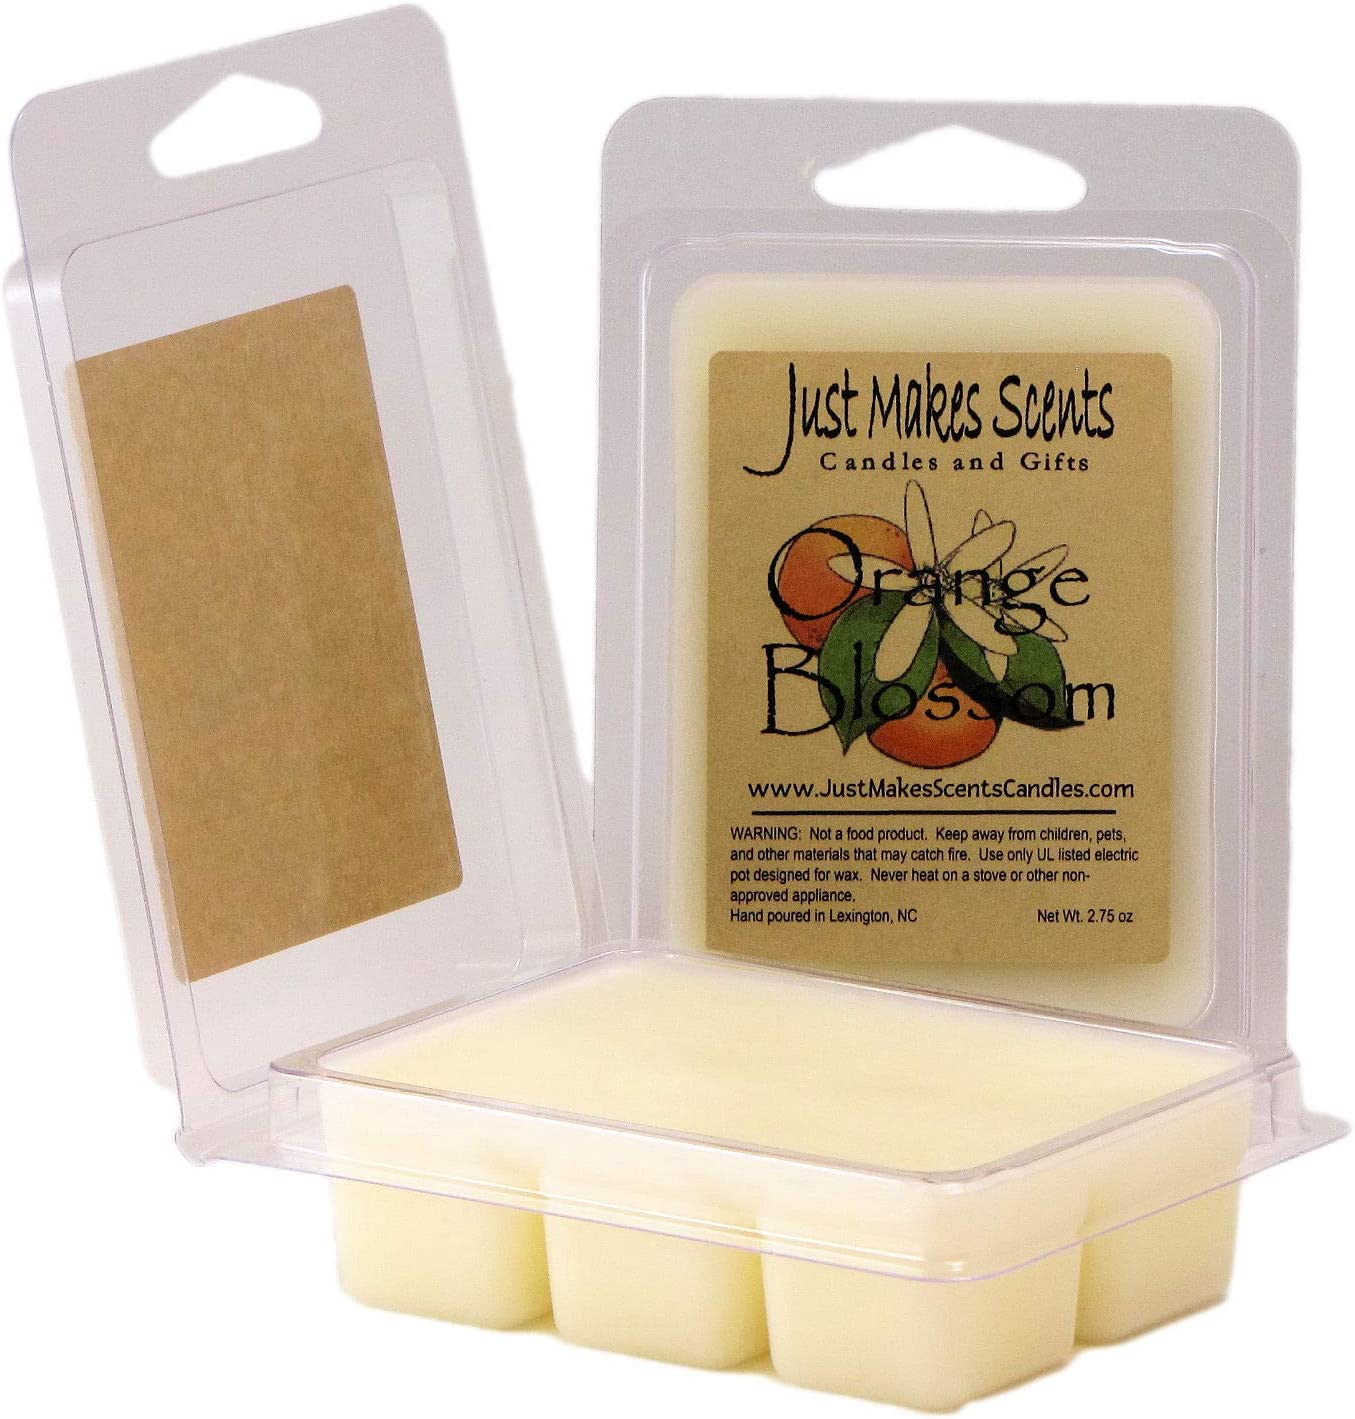 Orange Cedar Wax Melts Strong Scented Natural Wax Melts Wax Tarts with Orange Scent Orange Wax Melts with a Cedar Scent